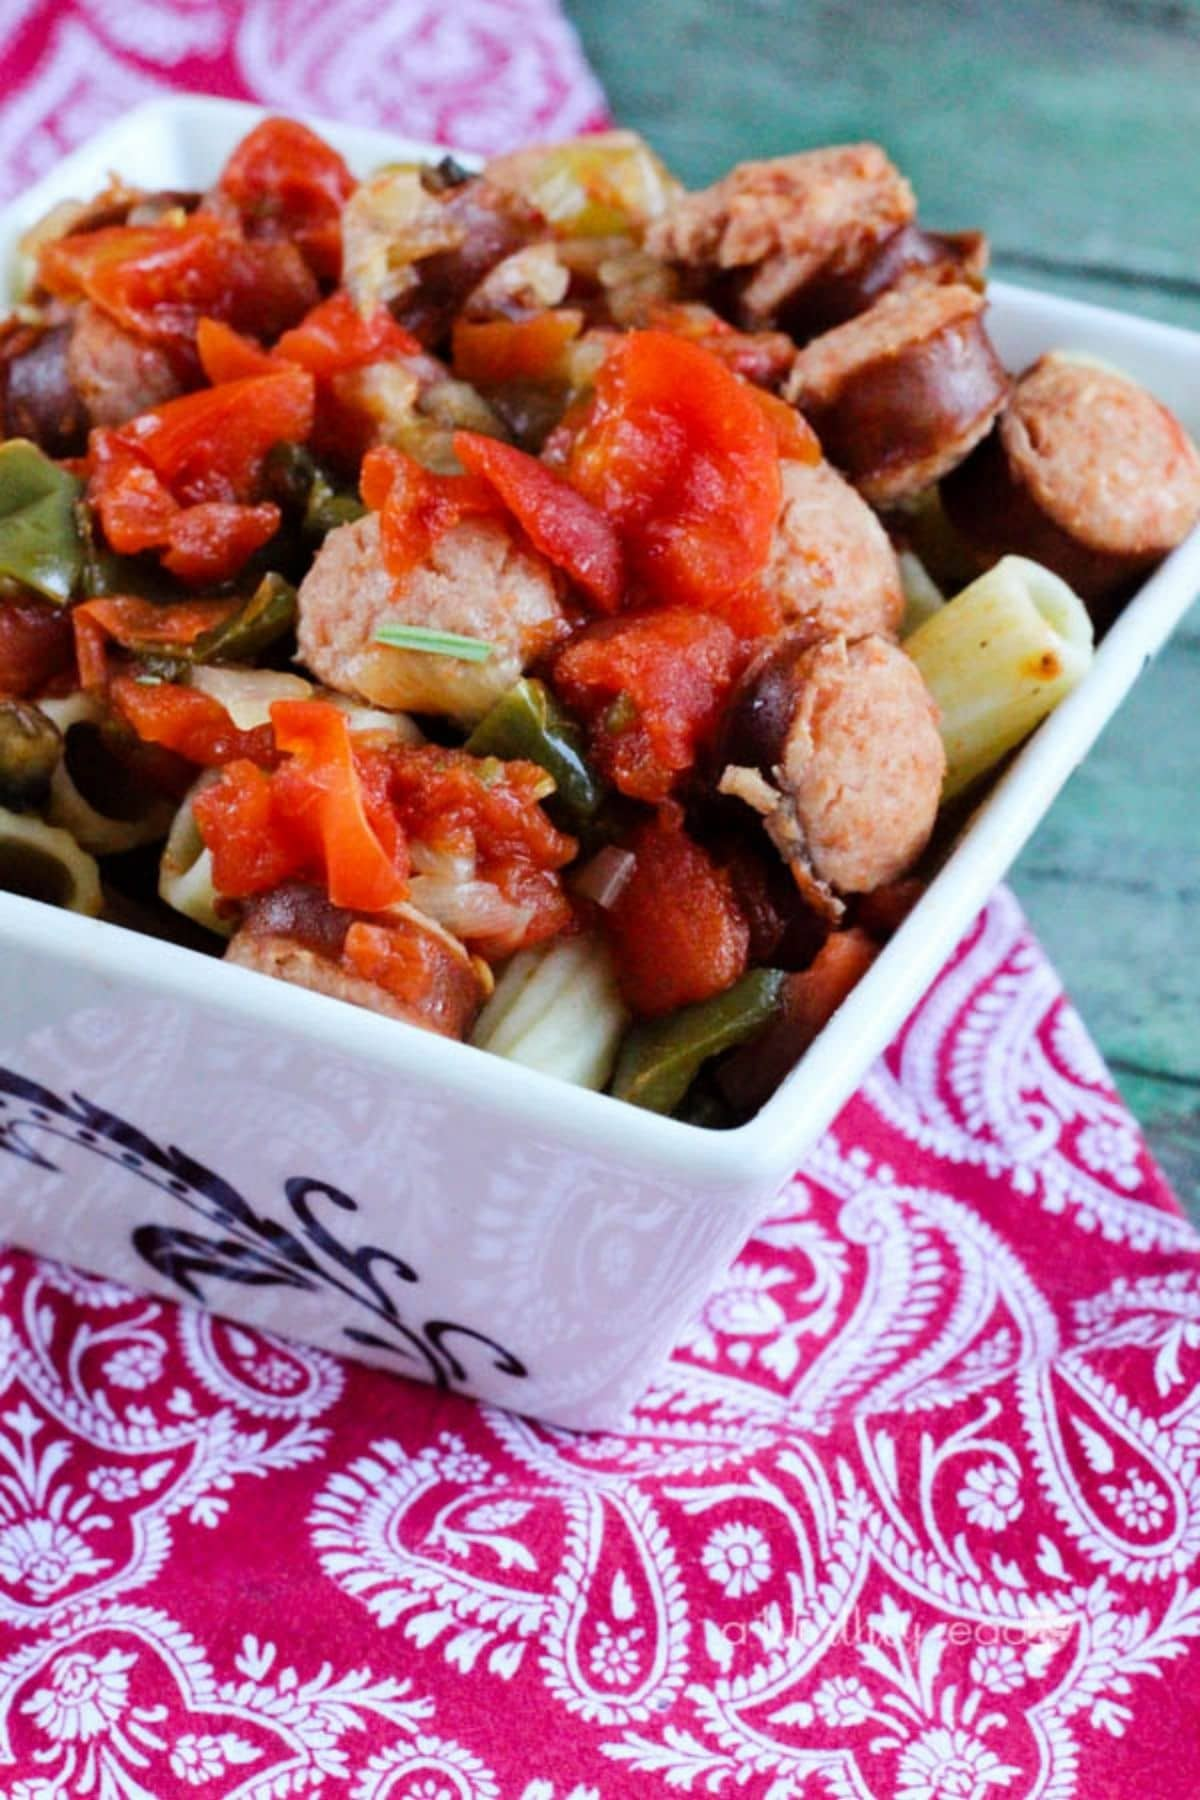 White square bowl on pink floral napkin with sausage and peppers